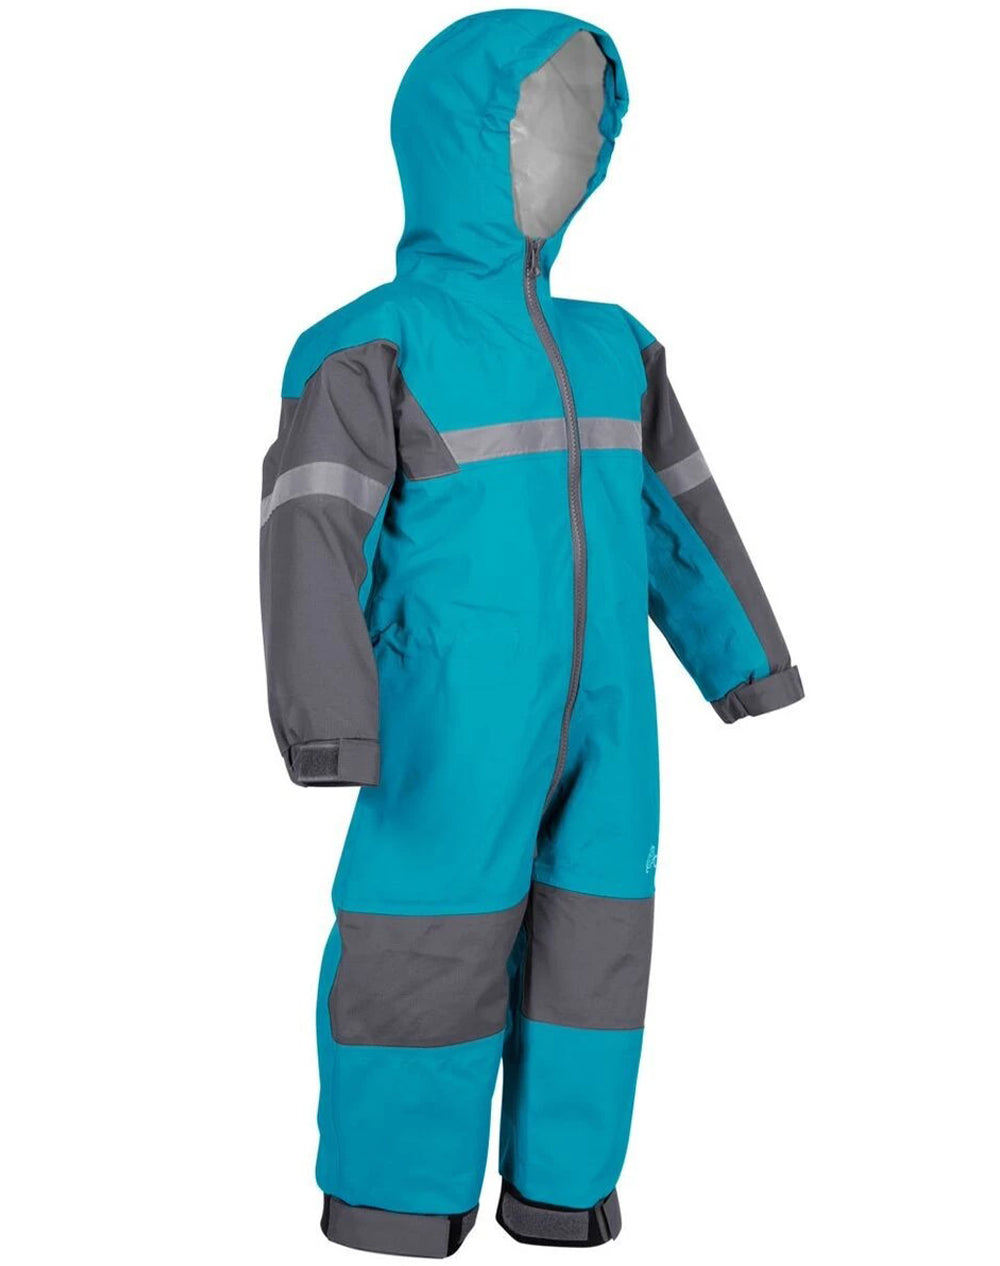 Breathable Lightweight with Hood OAKI Rain Jacket for Kids//Toddlers Waterproof